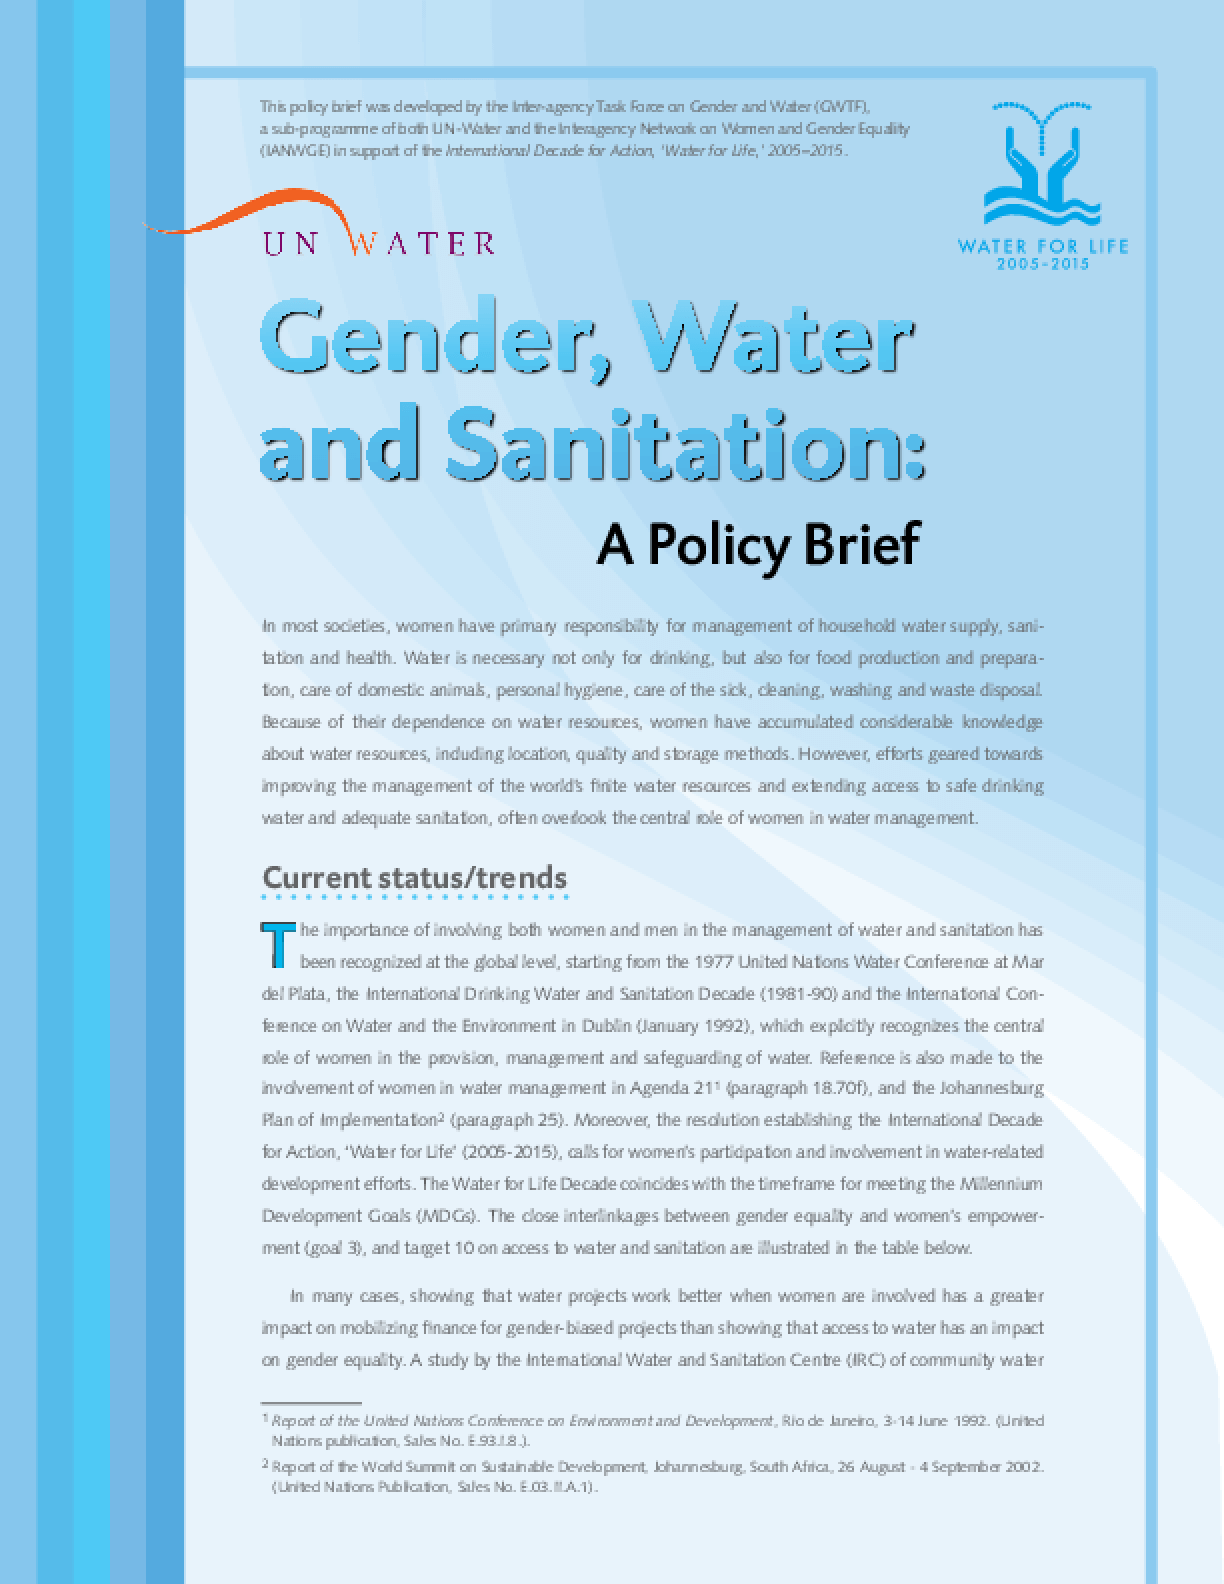 Gender, Water and Sanitation: A Policy Brief